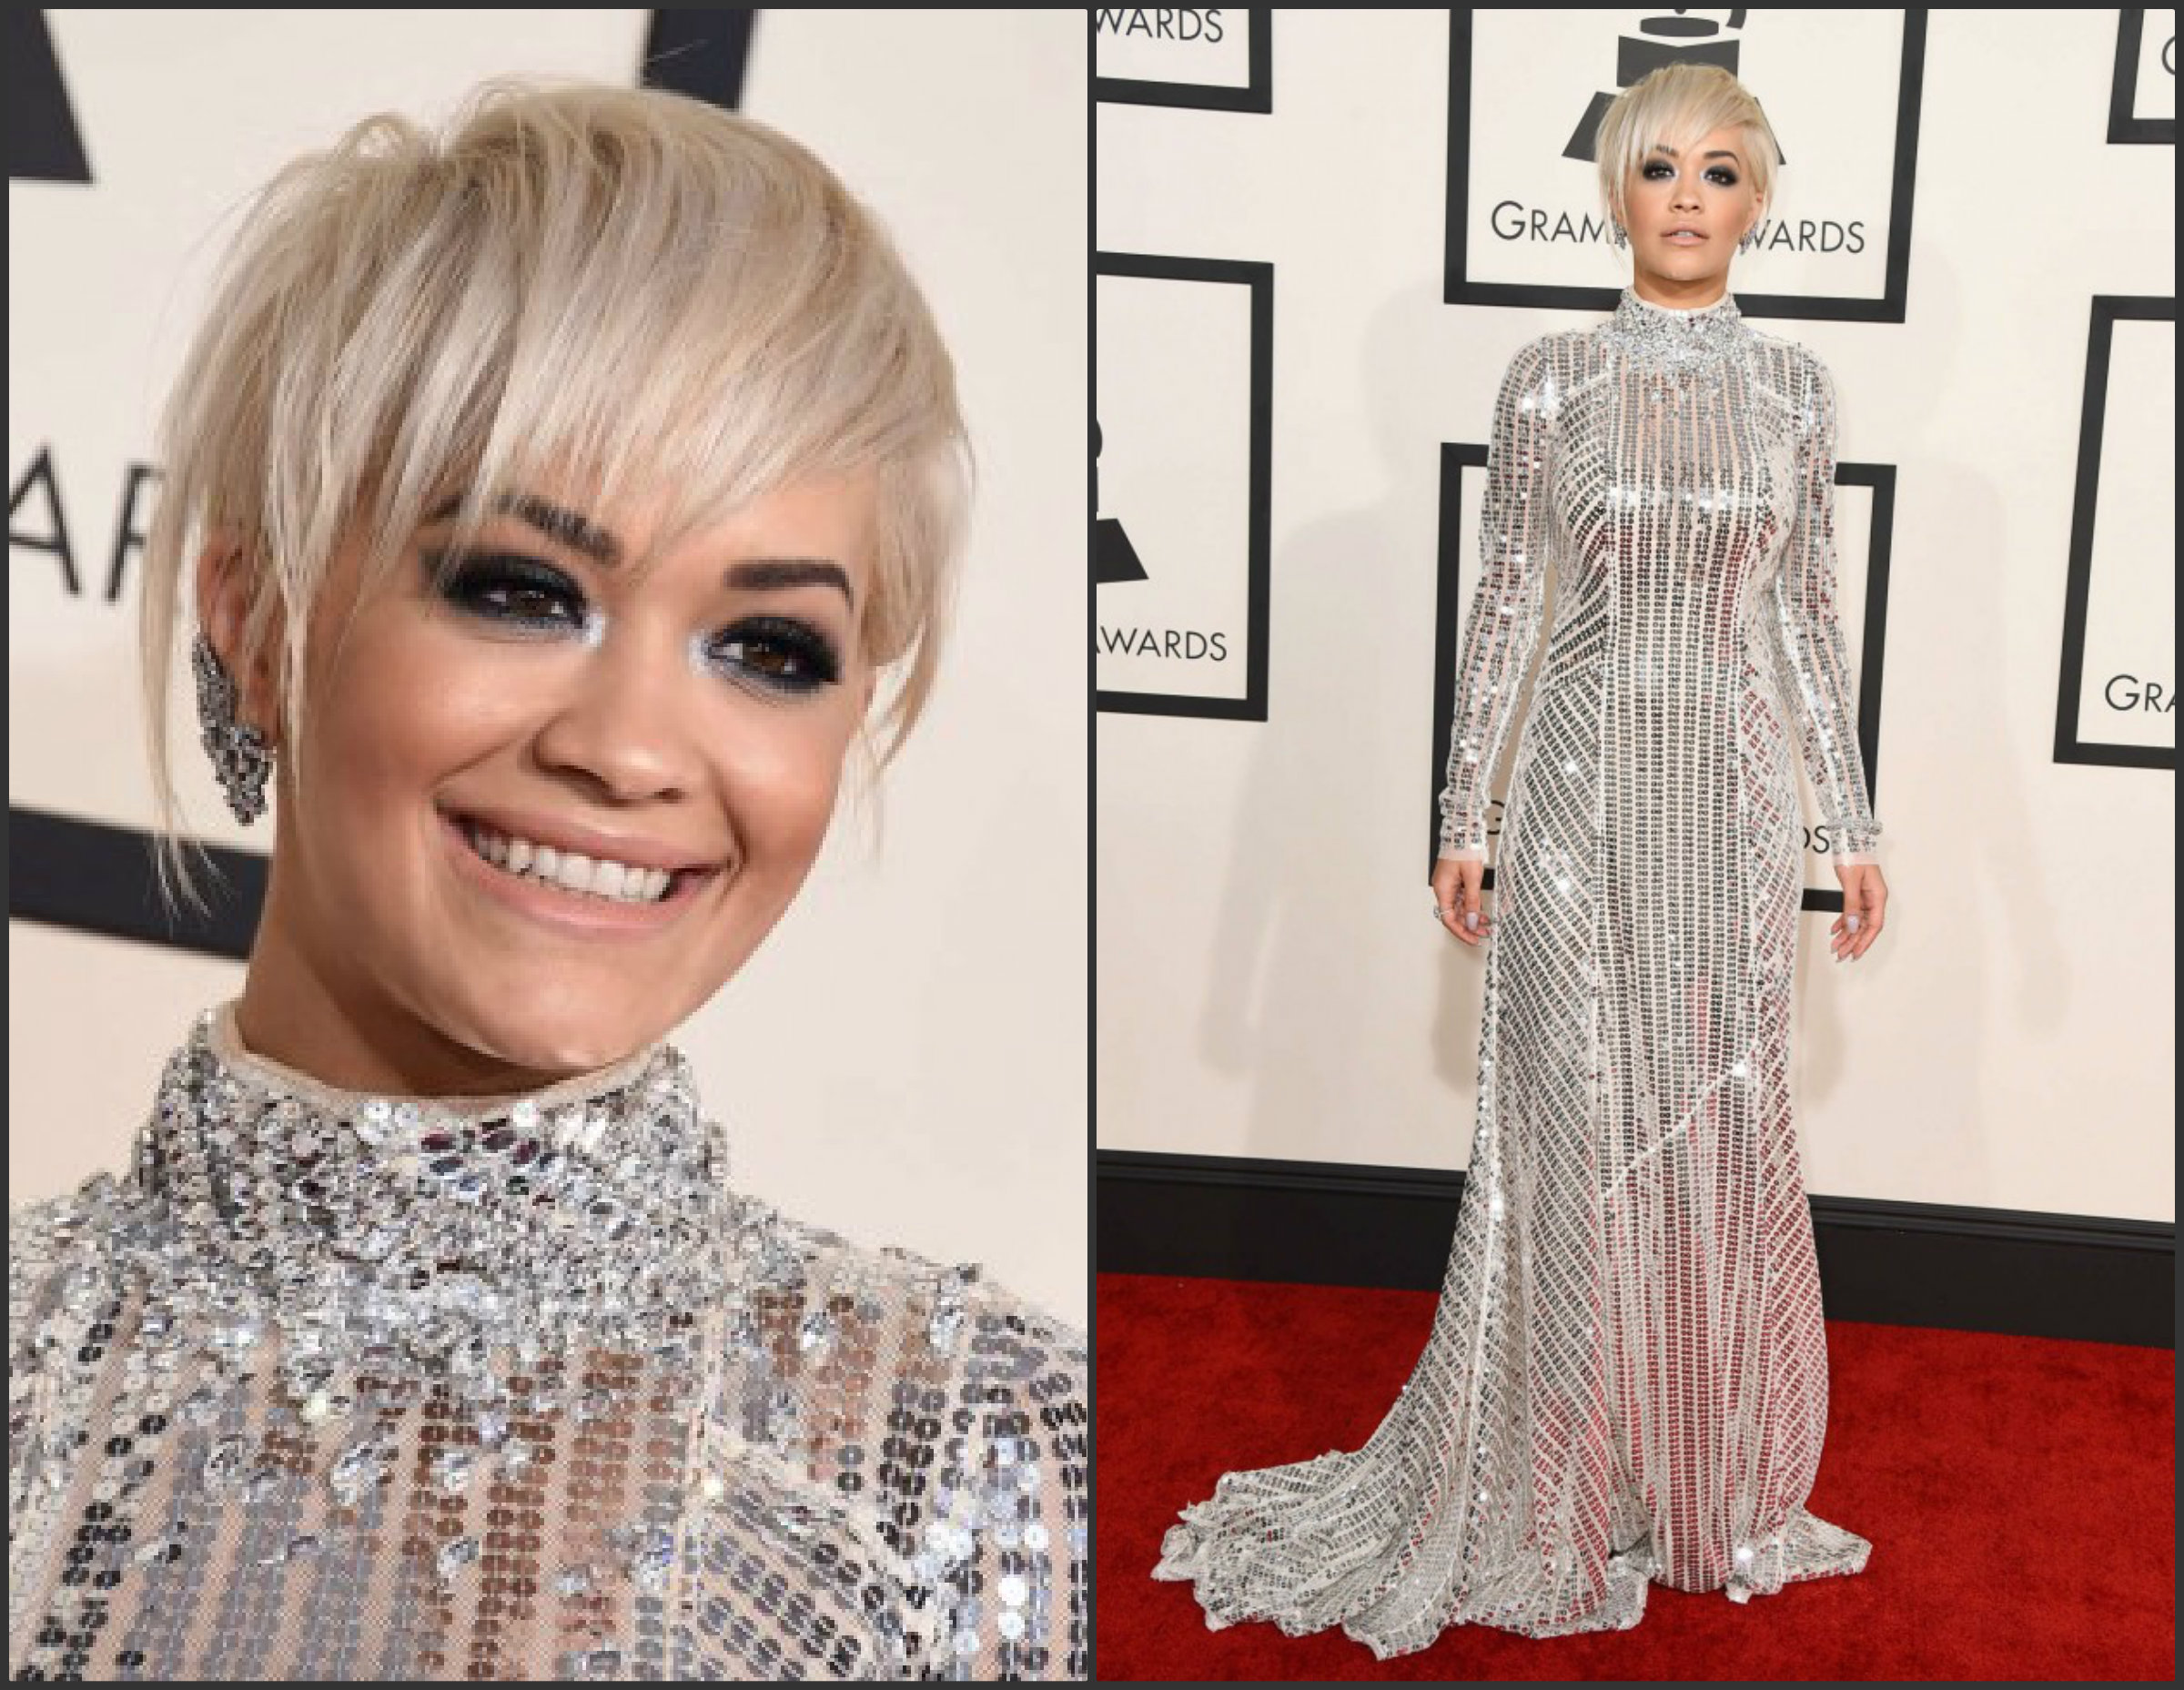 Rita-Ora-In-Prada- at -the-2015-Grammy-Awards